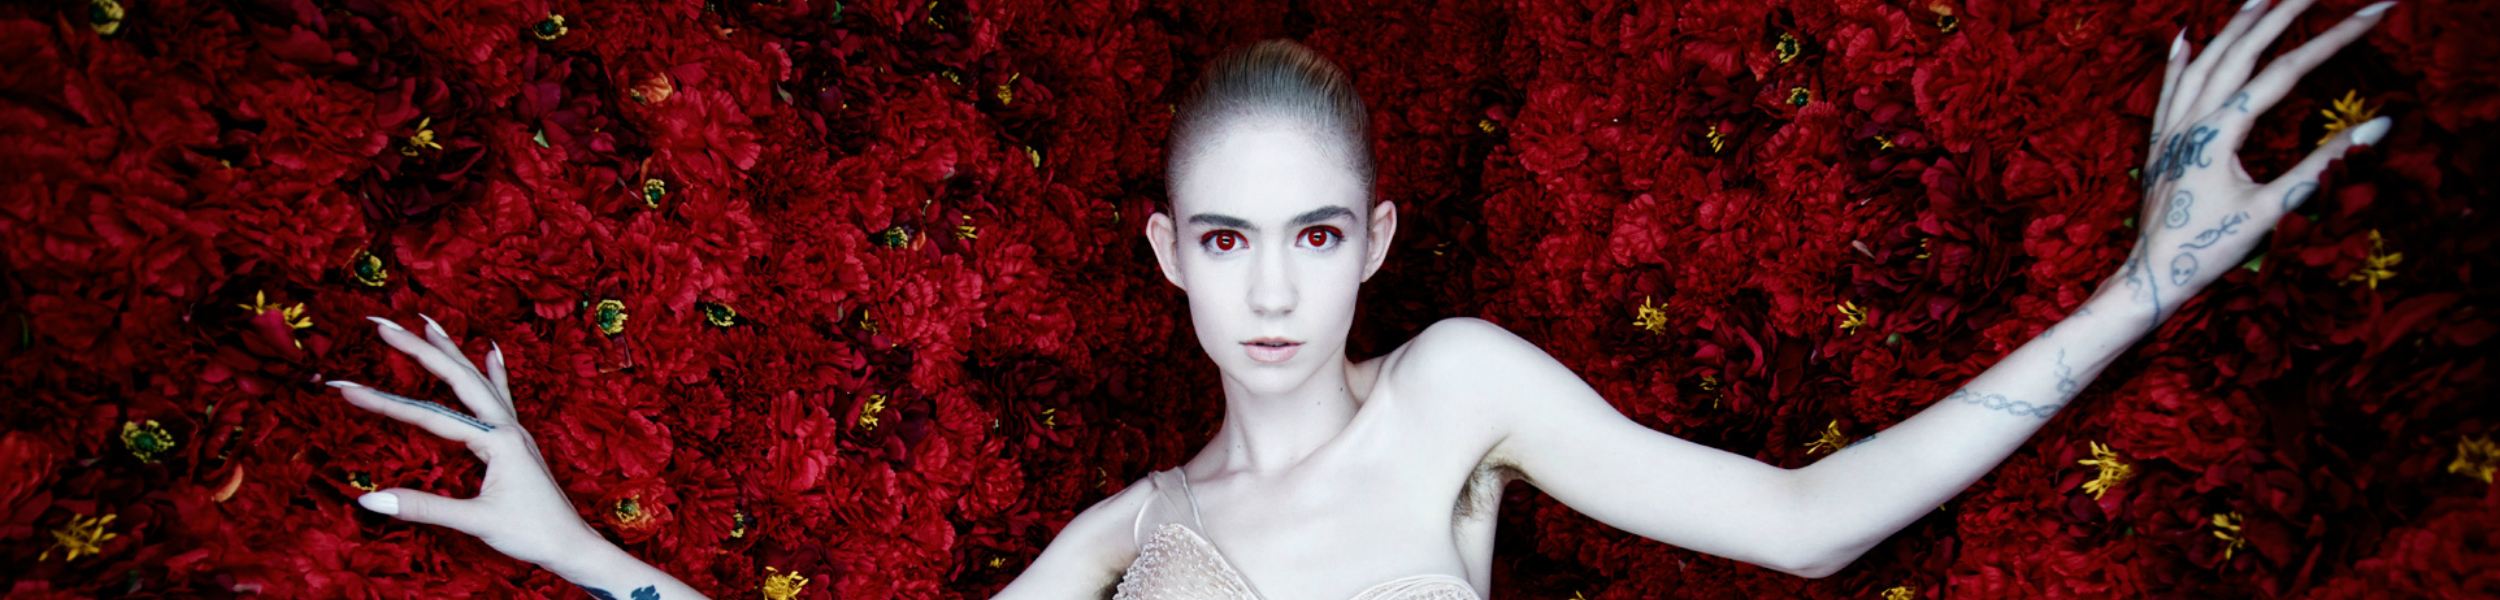 Grimes - 'Venus Fly' Video